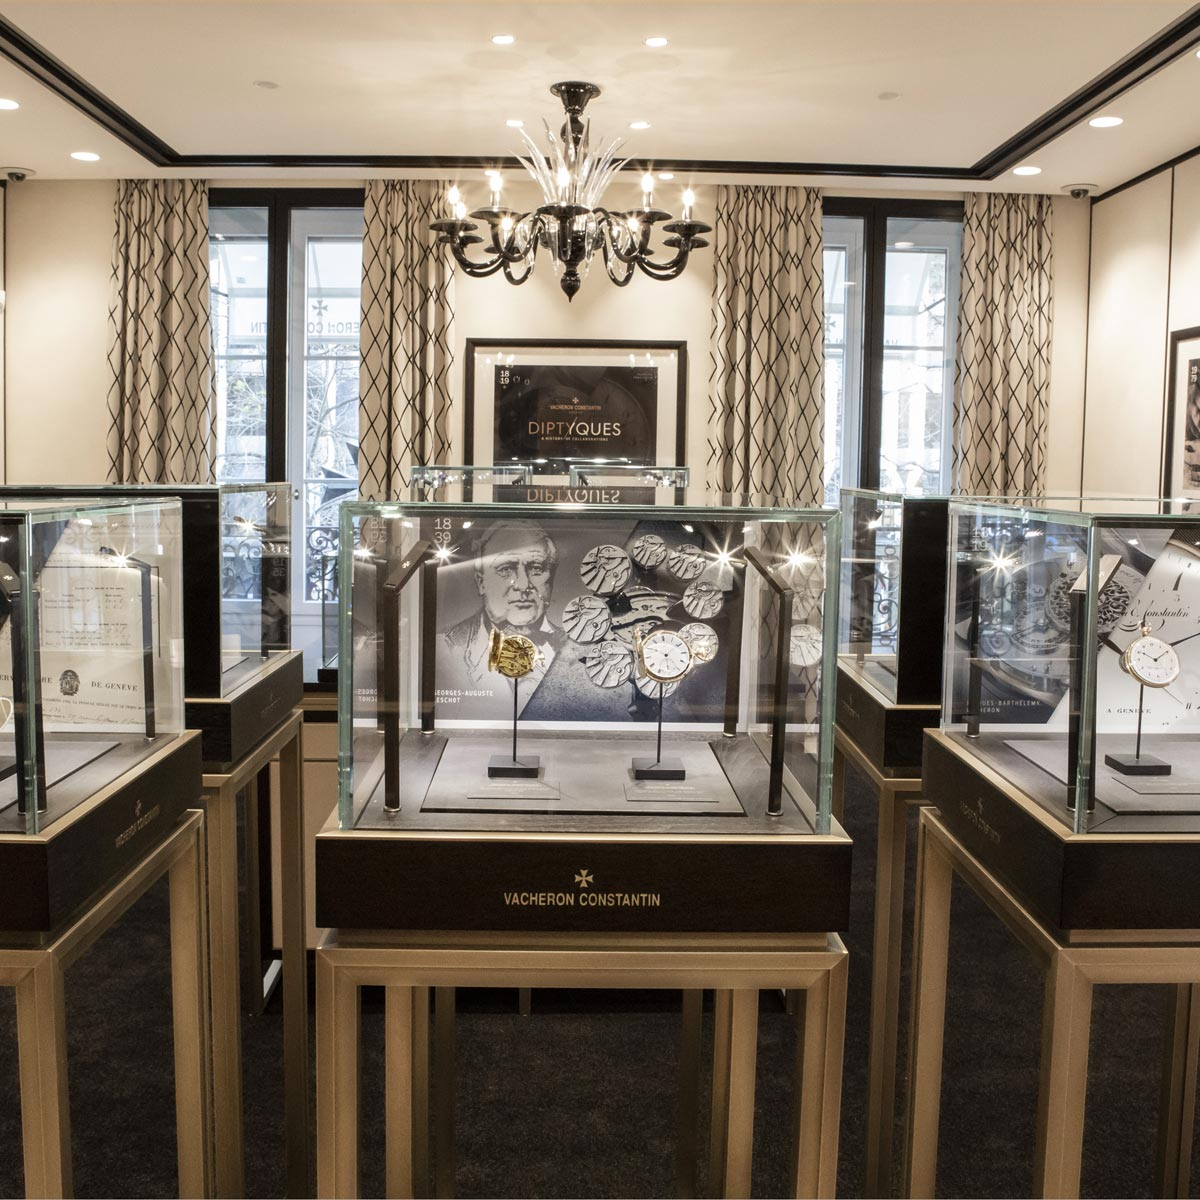 La Cote des Montres : Photo - Vacheron Constantin expose à Genève « Diptyques » a History of Collaborations